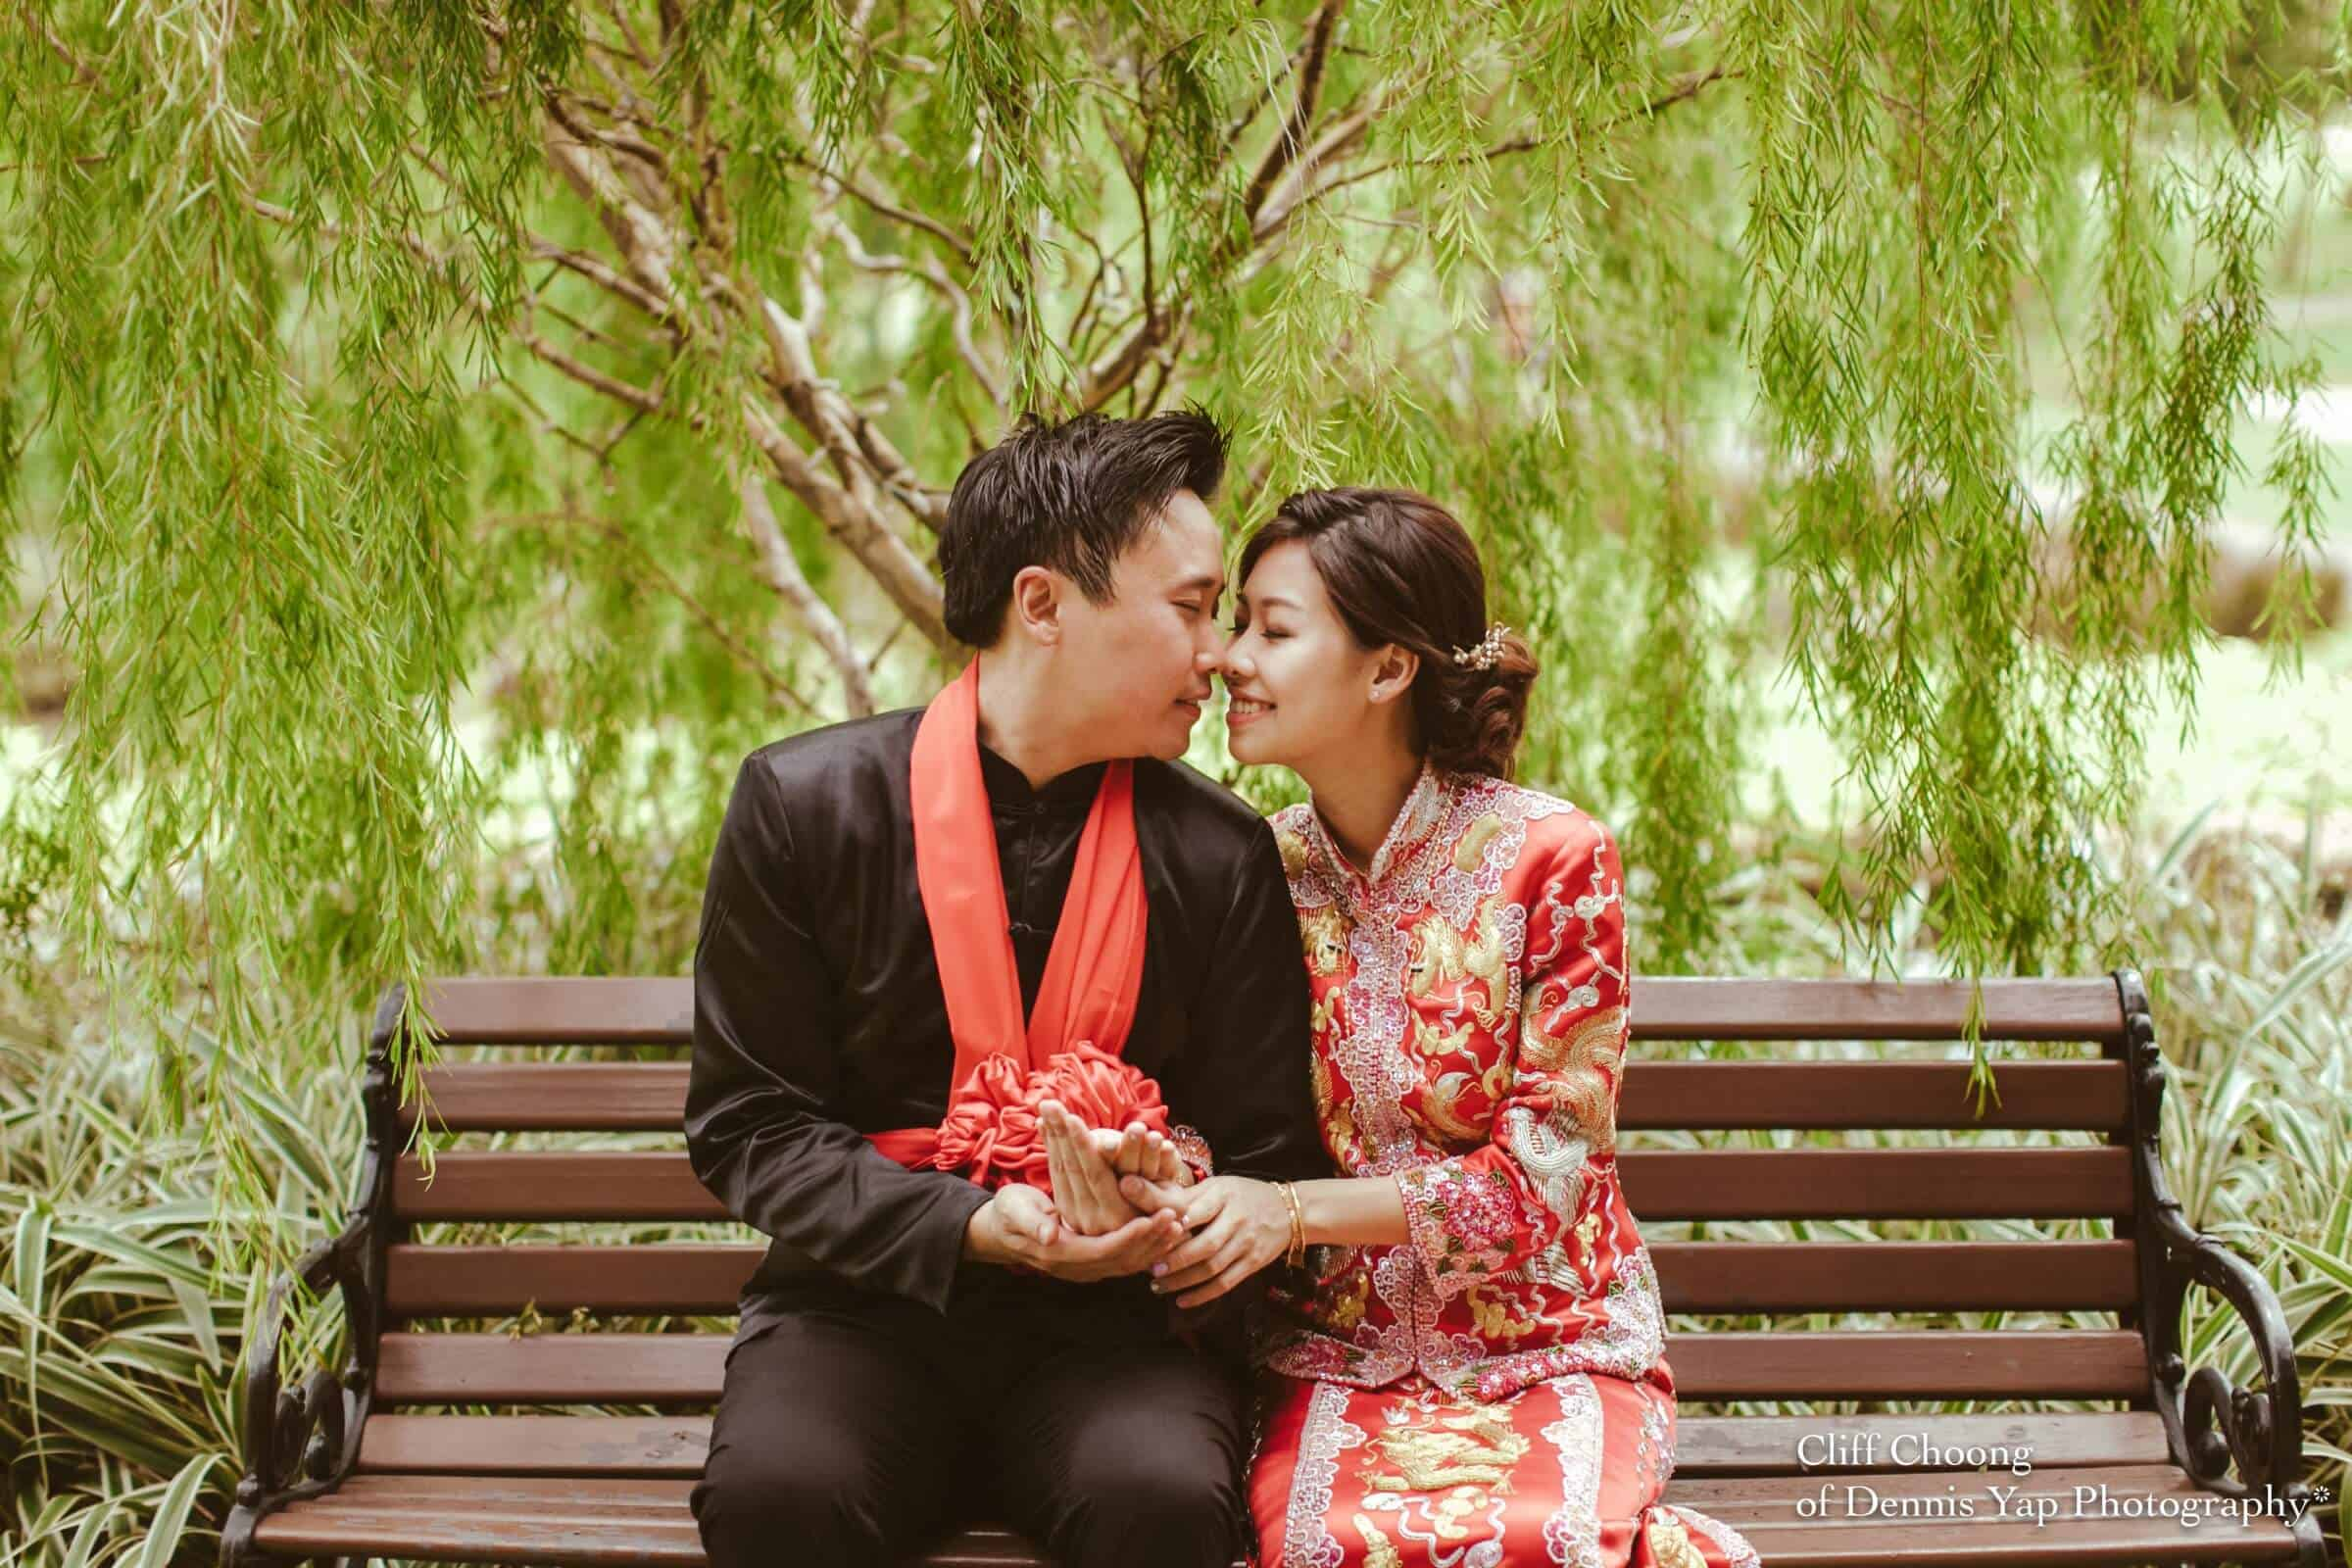 Wedding day in Kuala Lumpur Kota Kemuning Malaysia Cliff Choong Photography actual day Tea Ceremony red chinese traditional rings couple